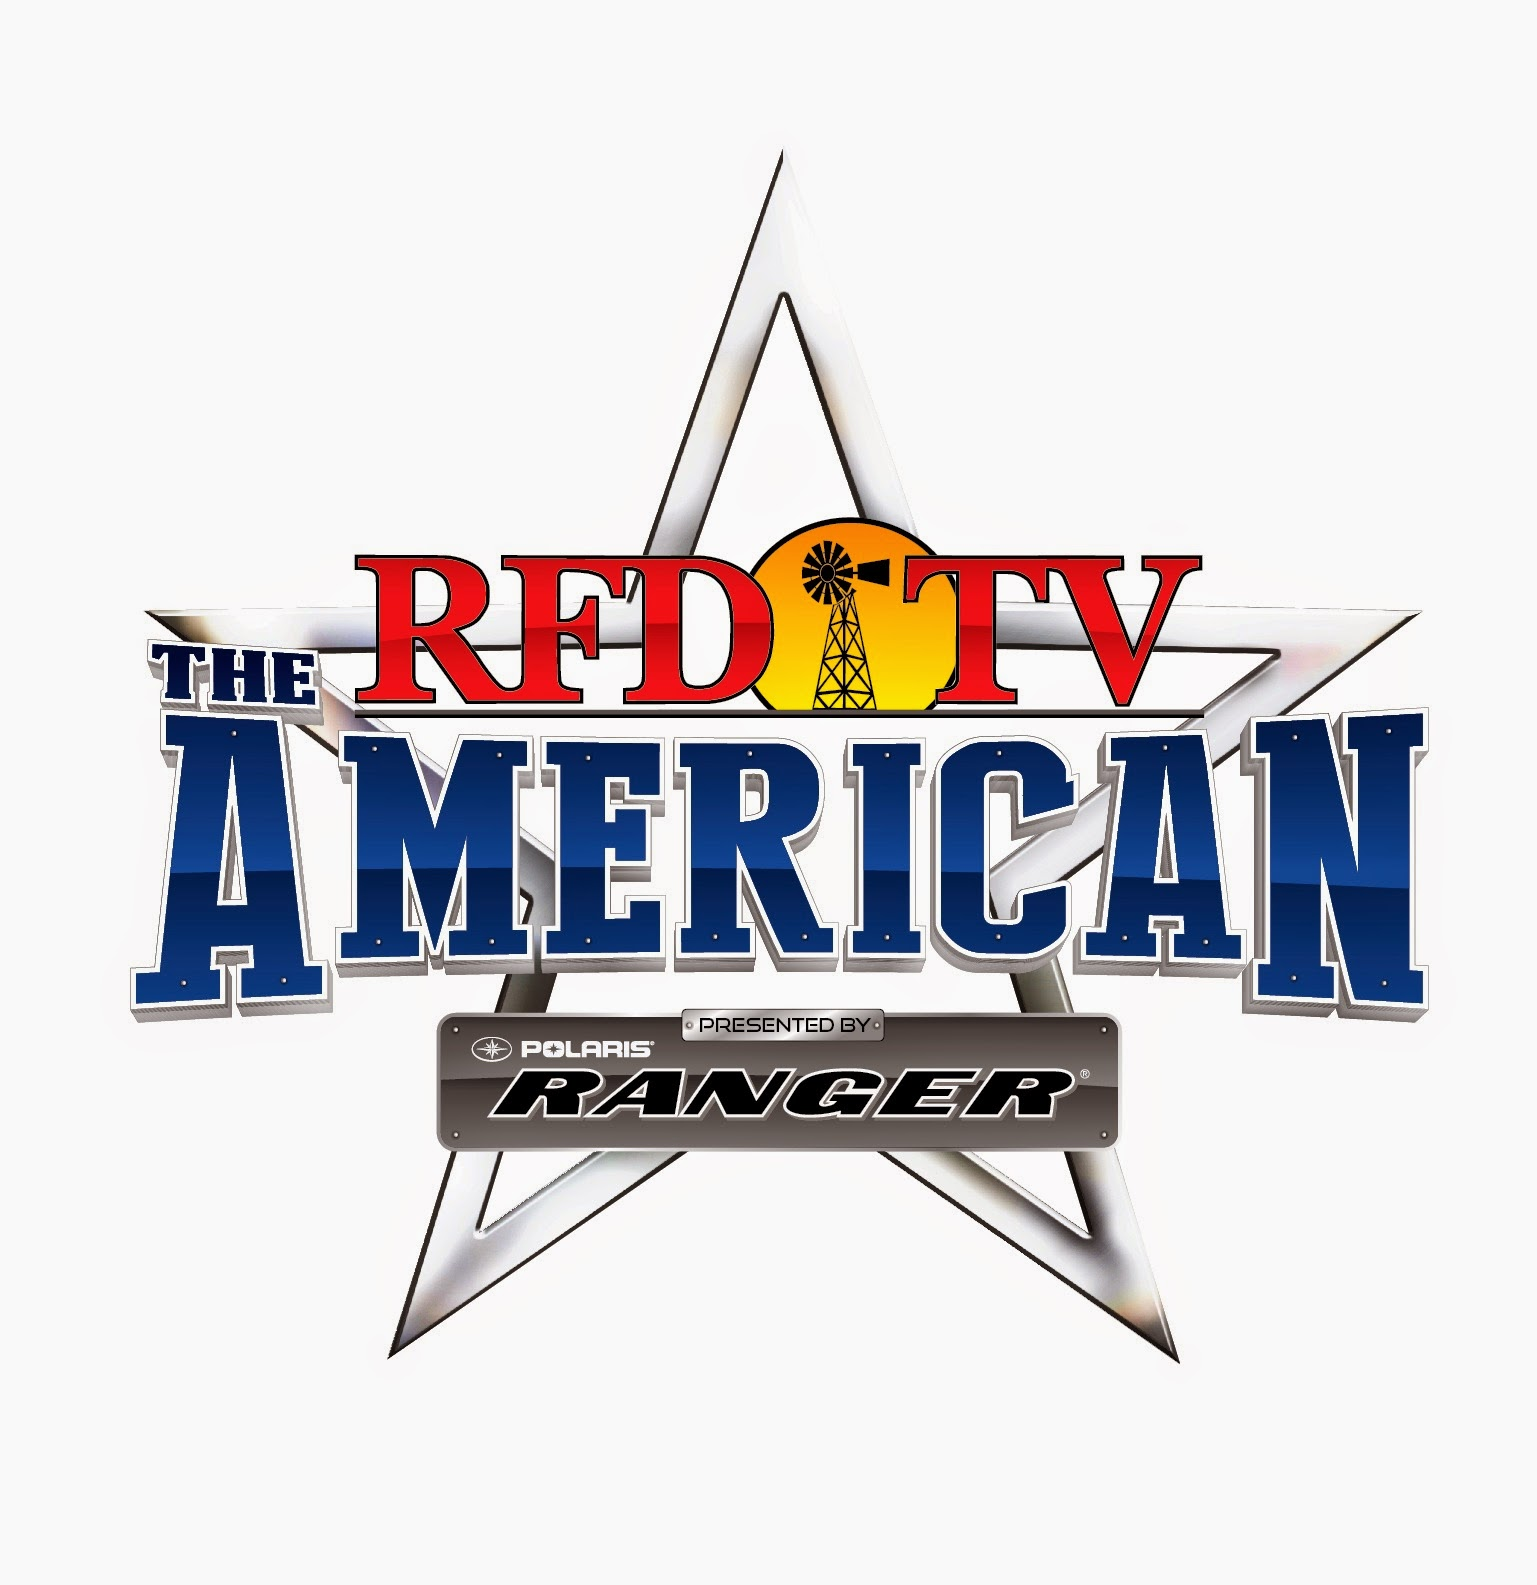 RFD-TV's THE AMERICAN